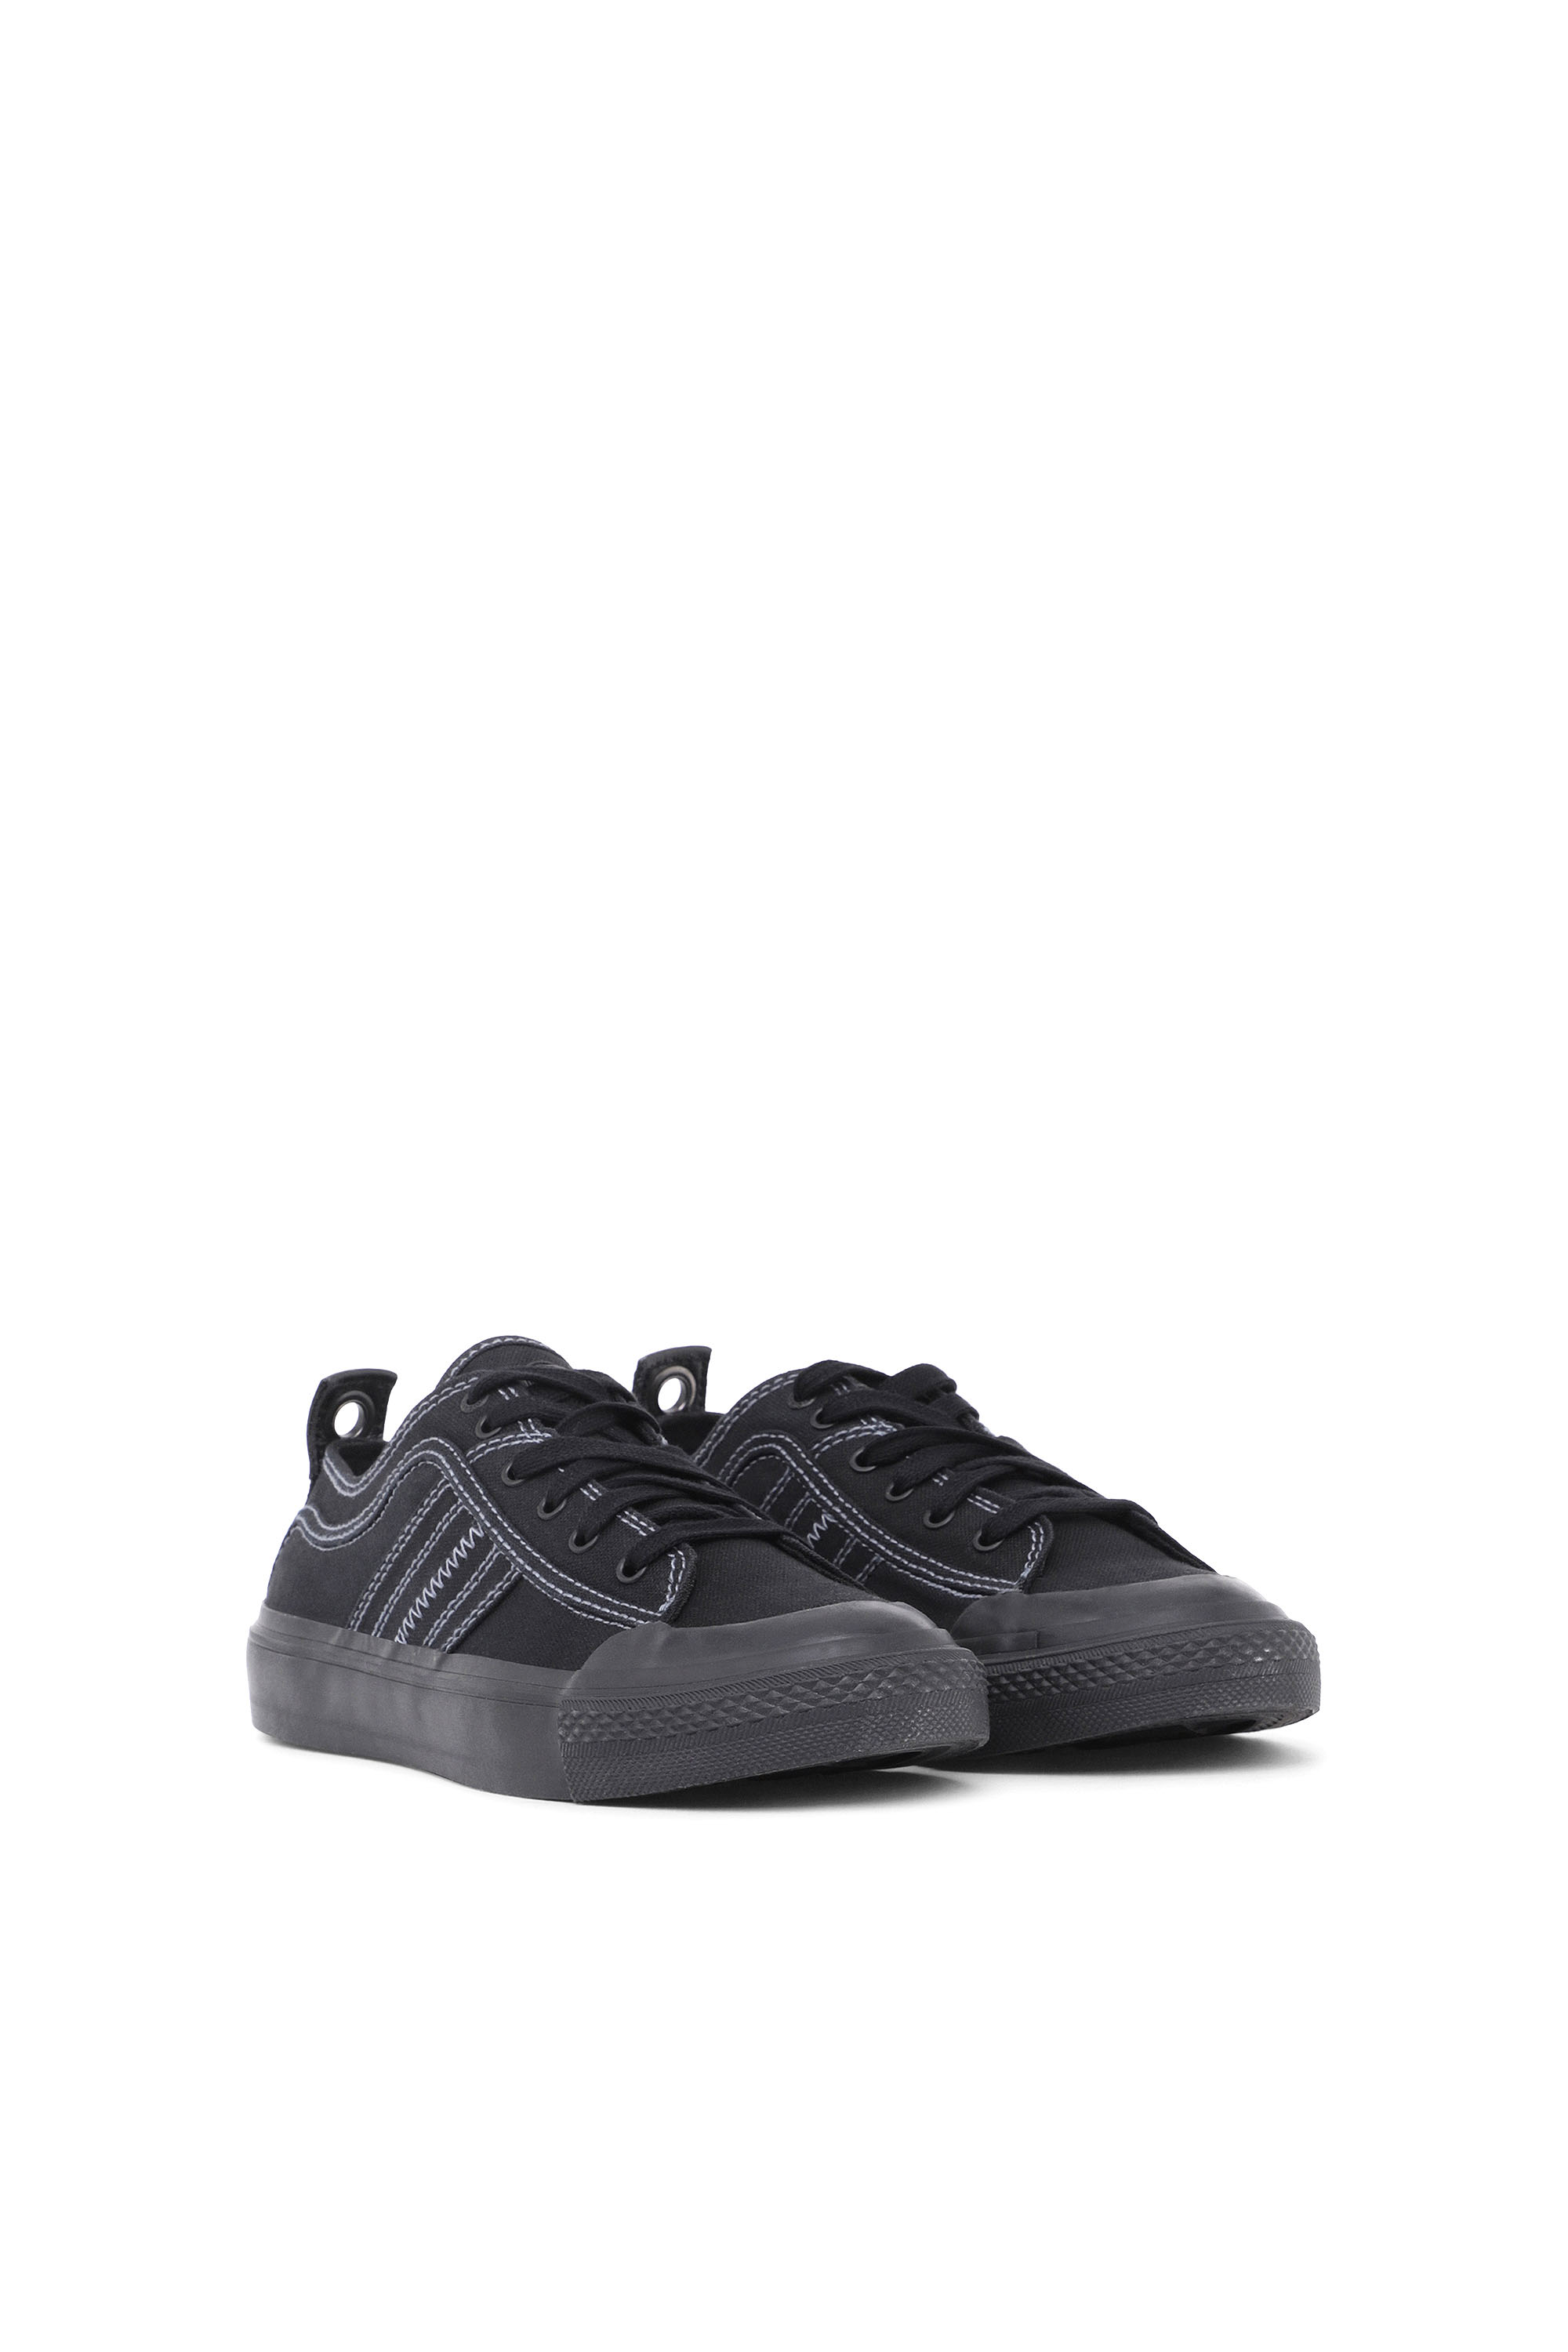 Diesel - S-ASTICO LOW LACE W,  - Sneakers - Image 2